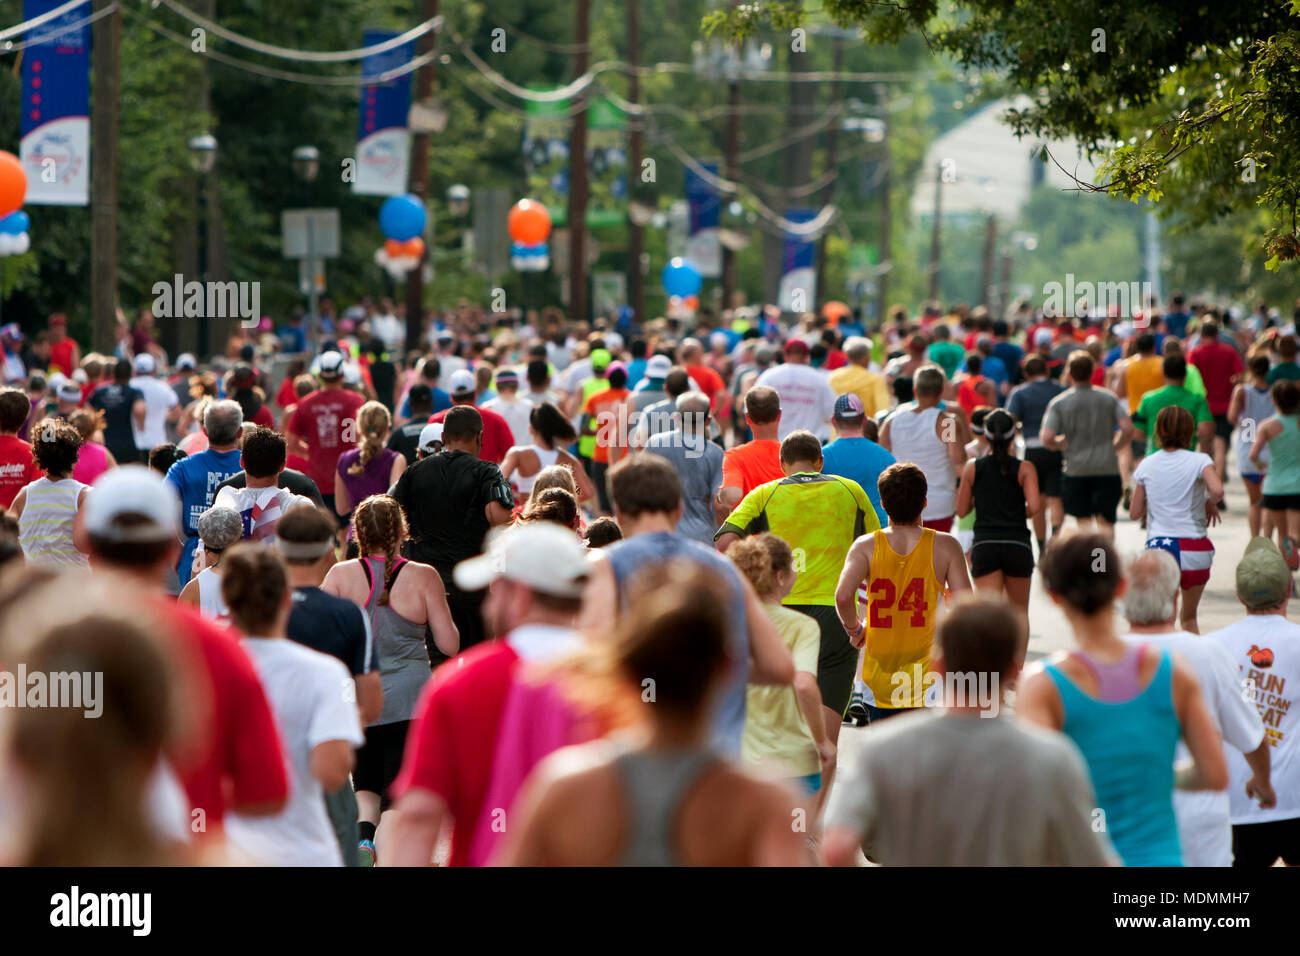 Atlanta, GA, USA - July 4, 2014:  Thousands of runners crowd an Atlanta street on their way to the finish line of the Peachtree Road Race. - Stock Image